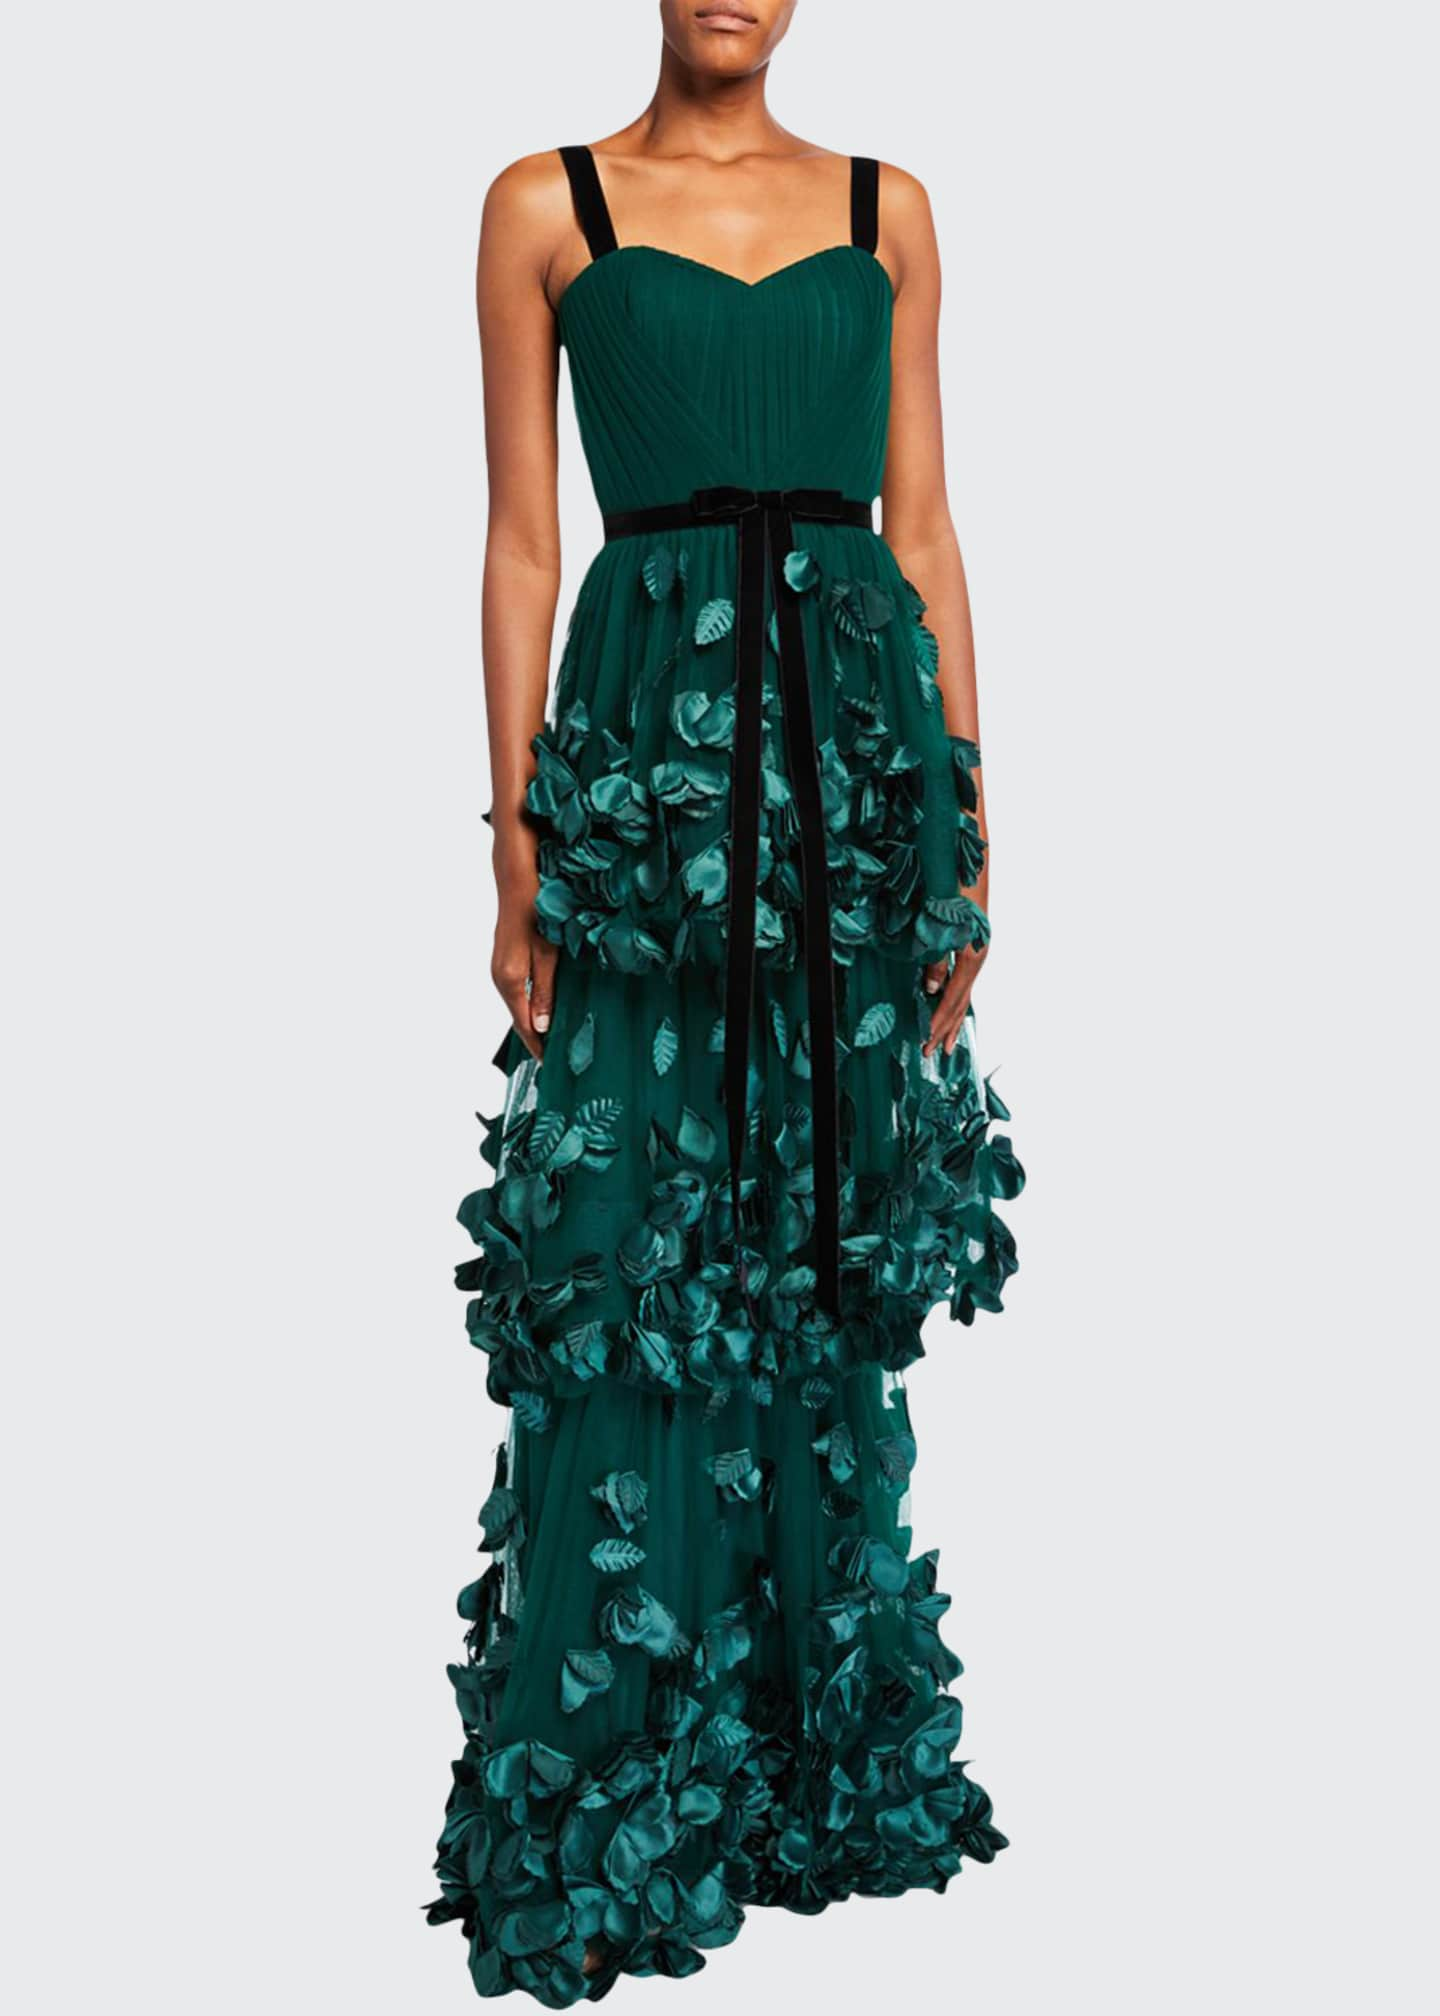 Marchesa Notte Sleeveless Three Tiered Column Gown with